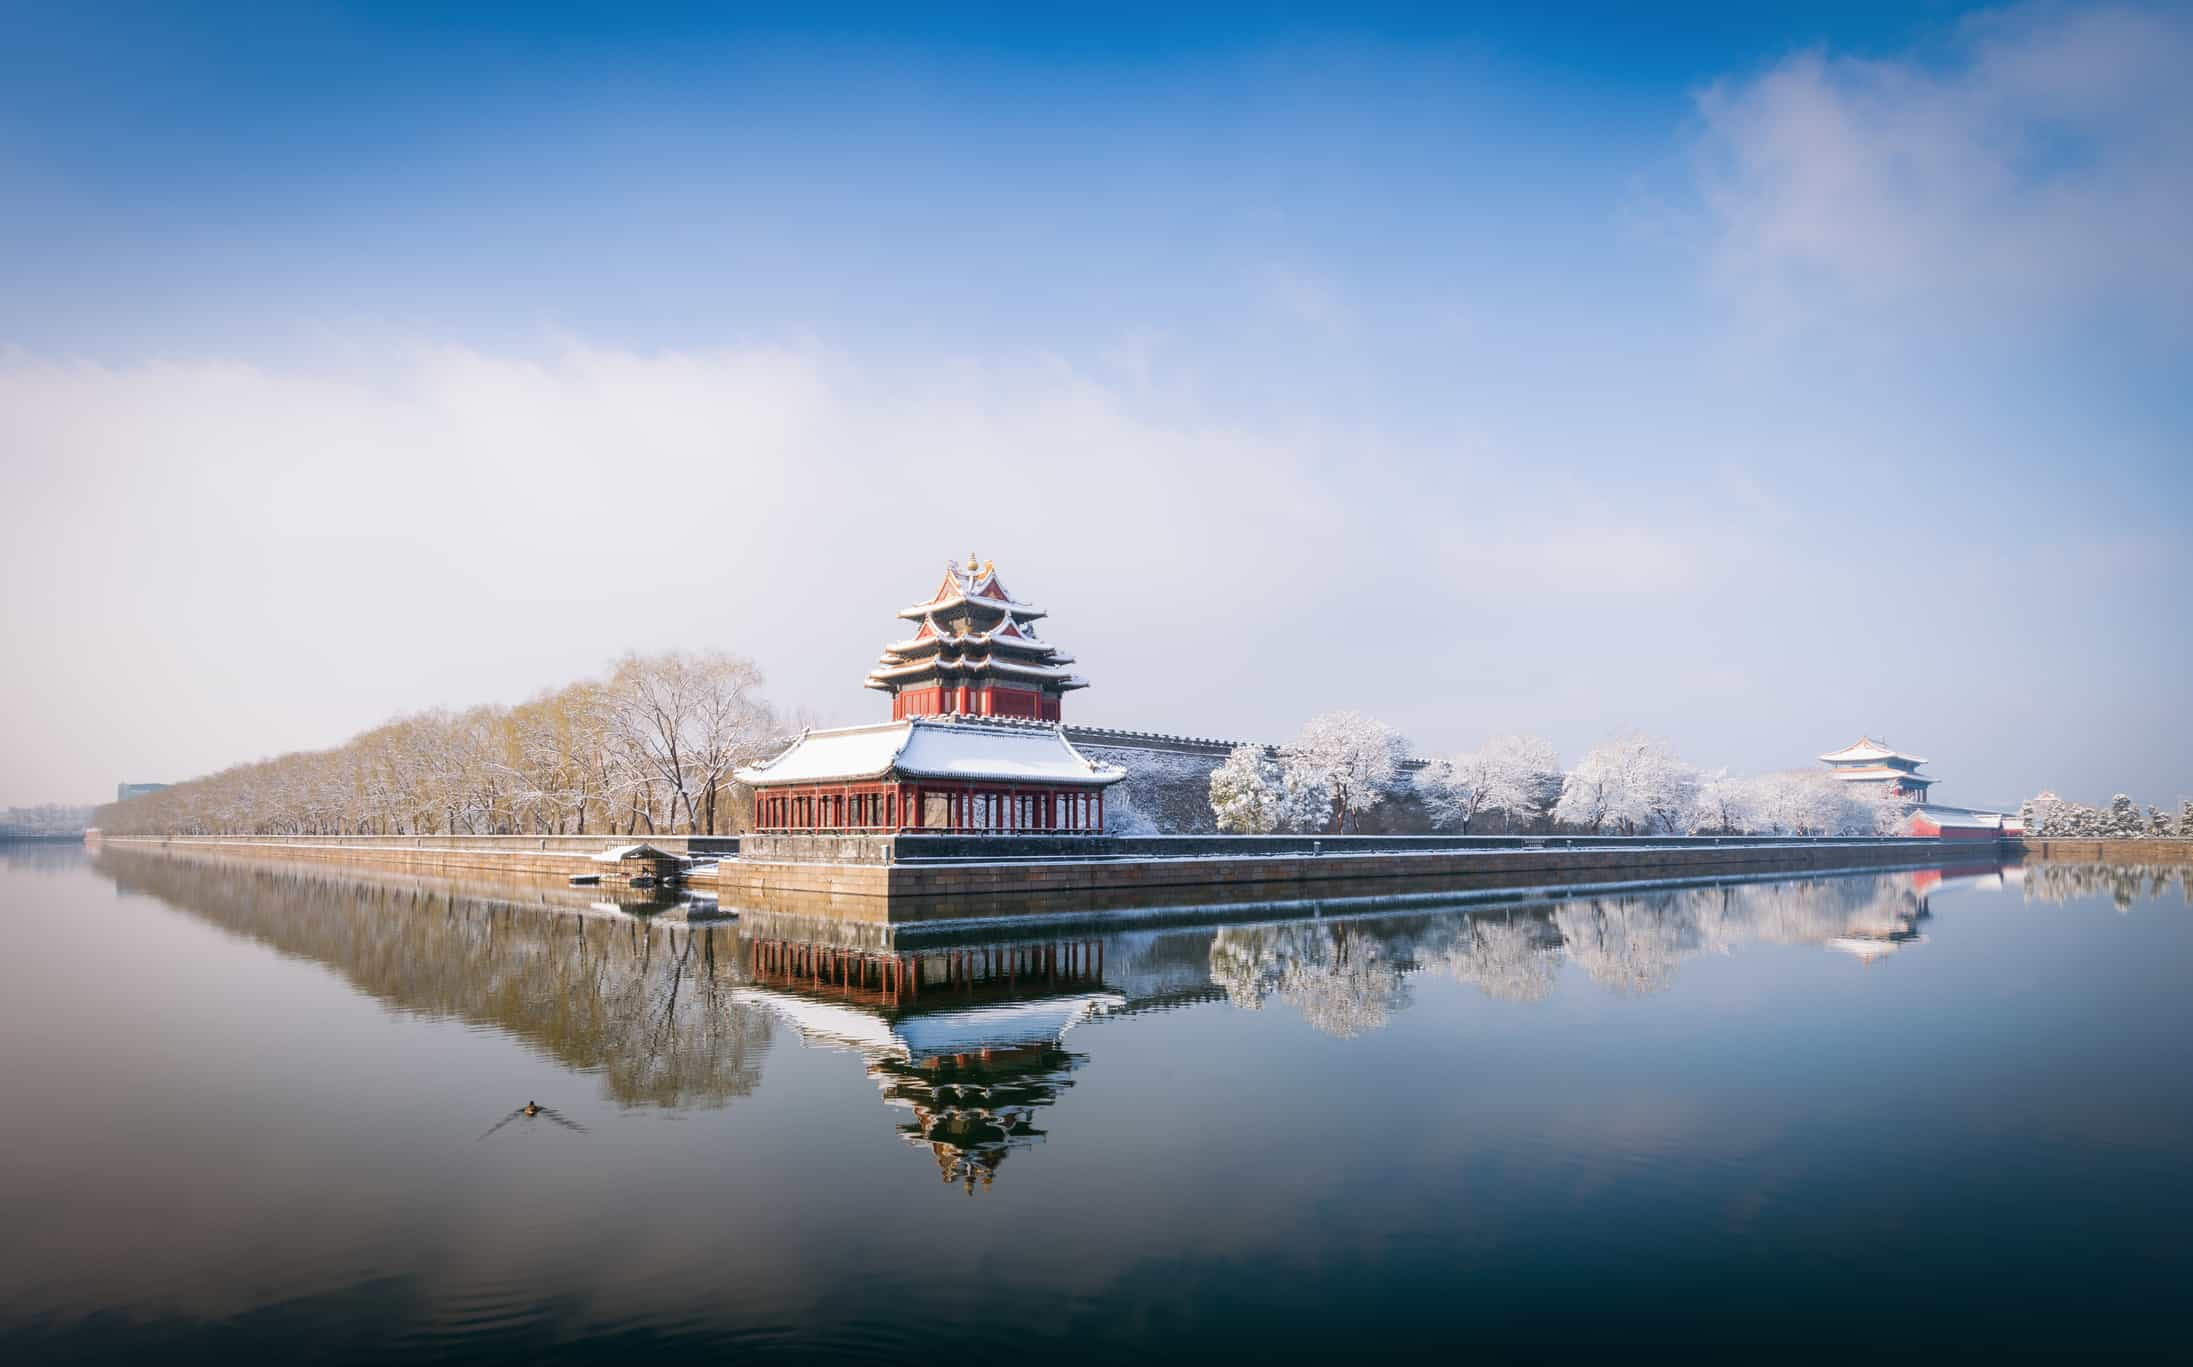 Snow on the North-East corner tower outside the Forbidden City in central Beijing.